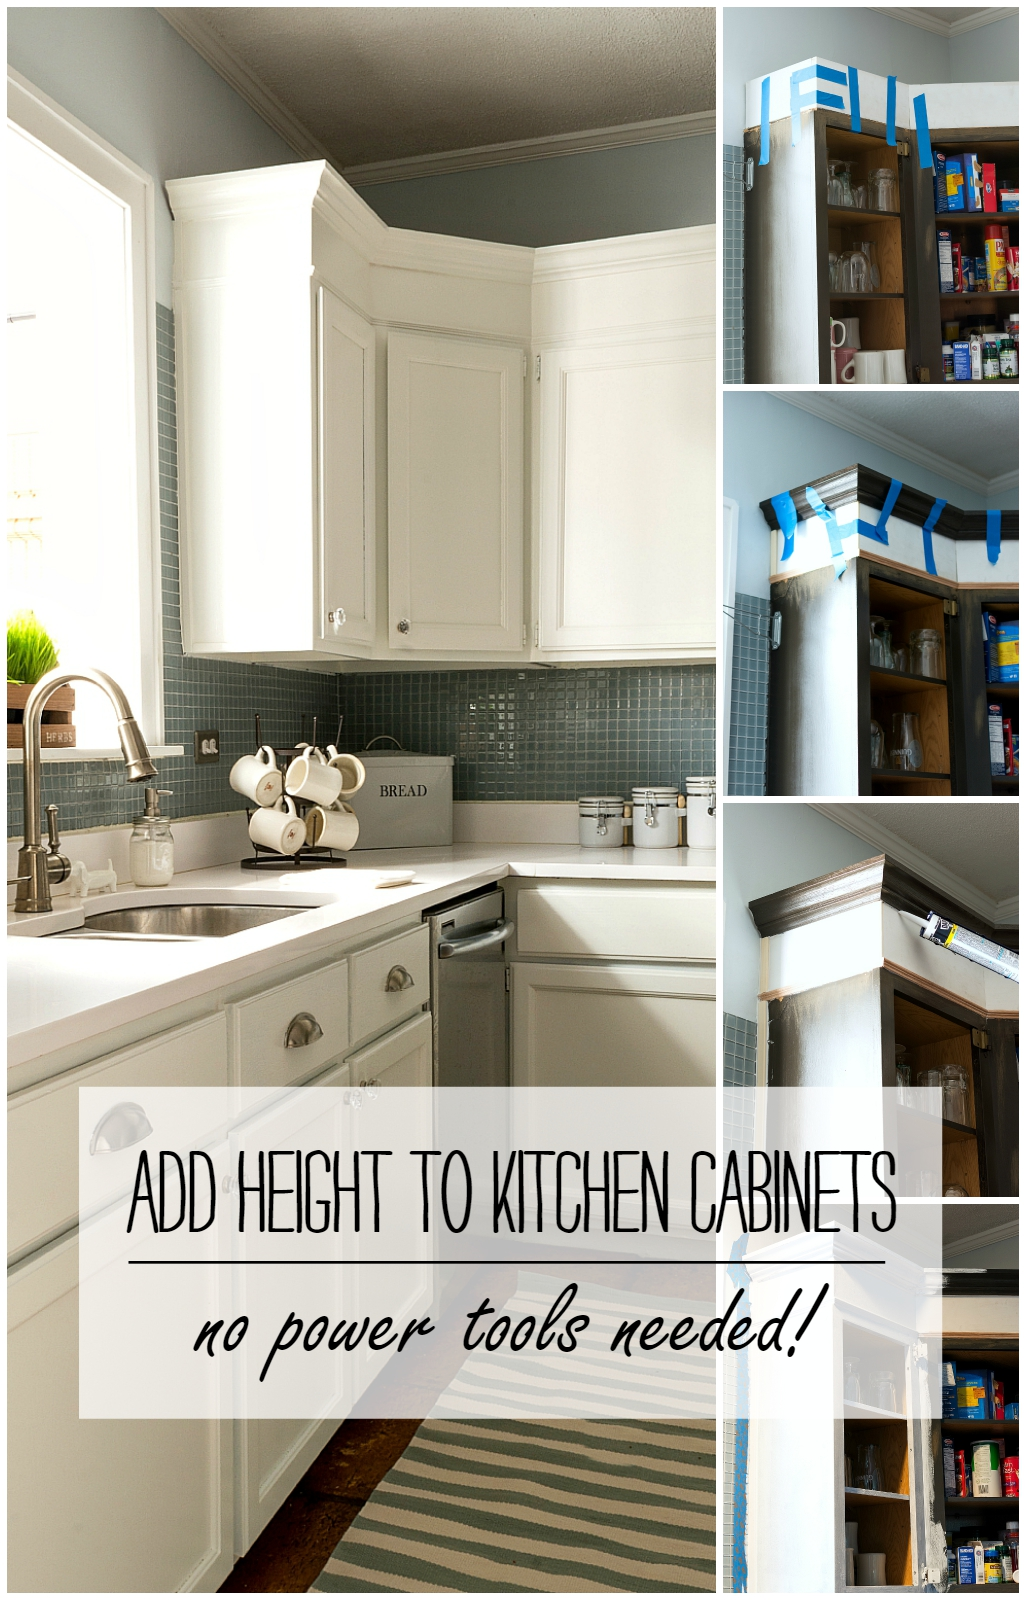 nice Adding Cabinets To Existing Kitchen #8: How To Add Height To Kitchen Cabinets - No Power Tools Needed